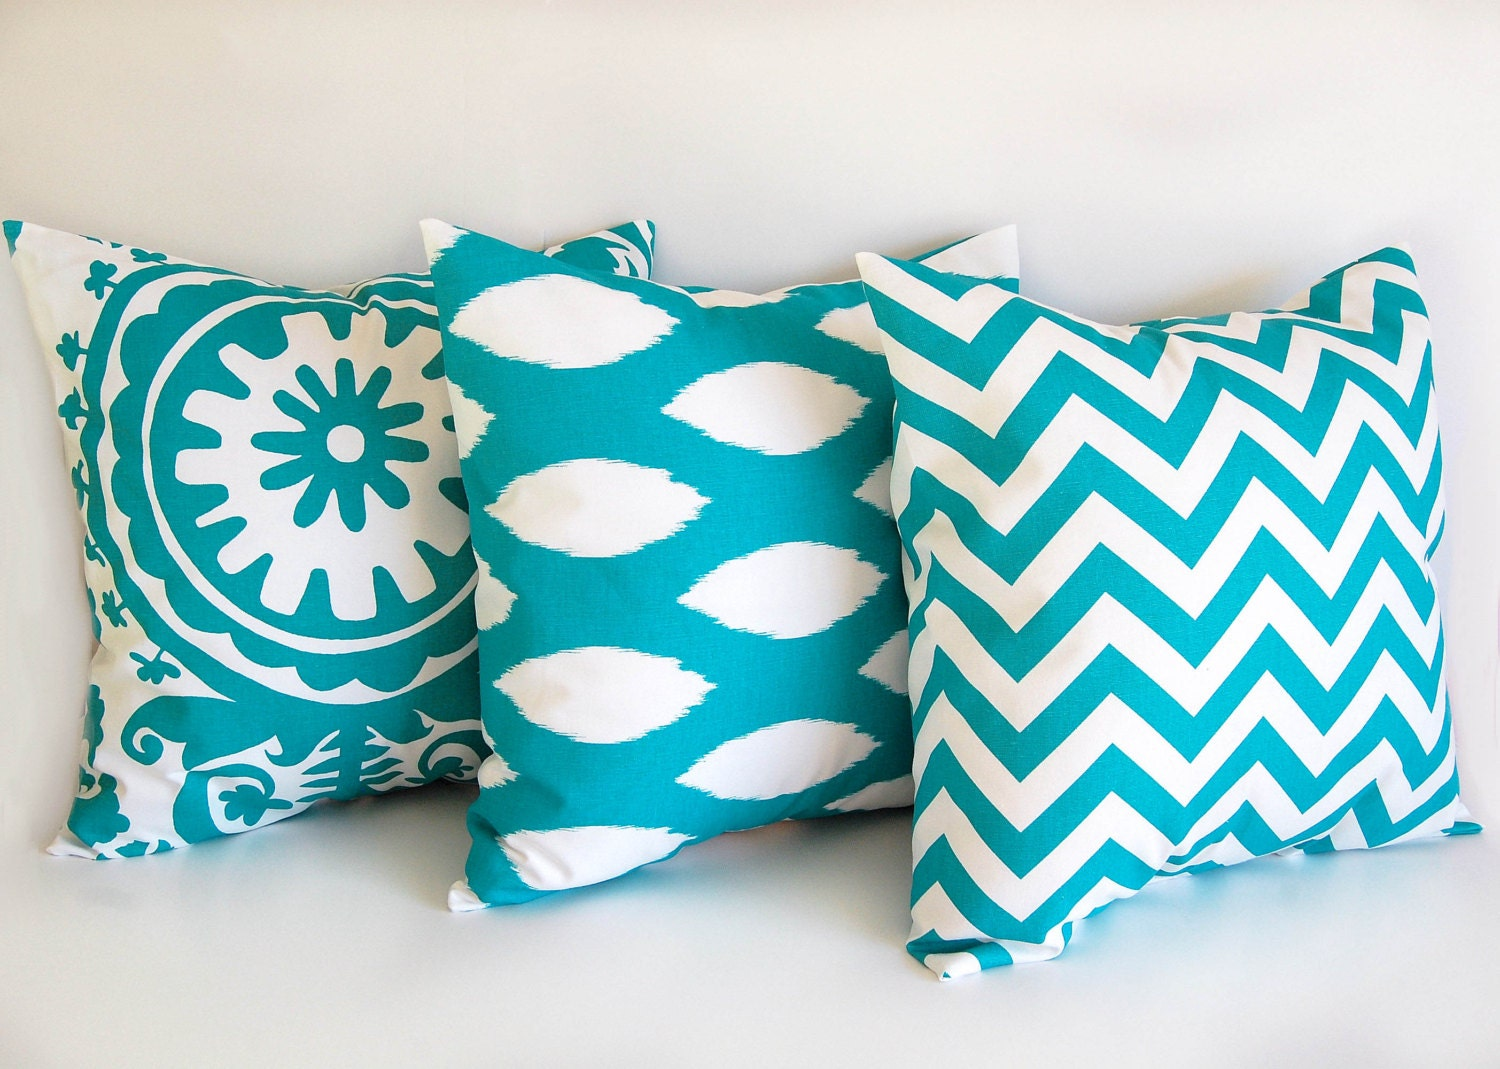 Throw Pillow Covers 20 X 20 : Turquoise throw pillow covers 20 x 20 cushion by ThePillowPeople